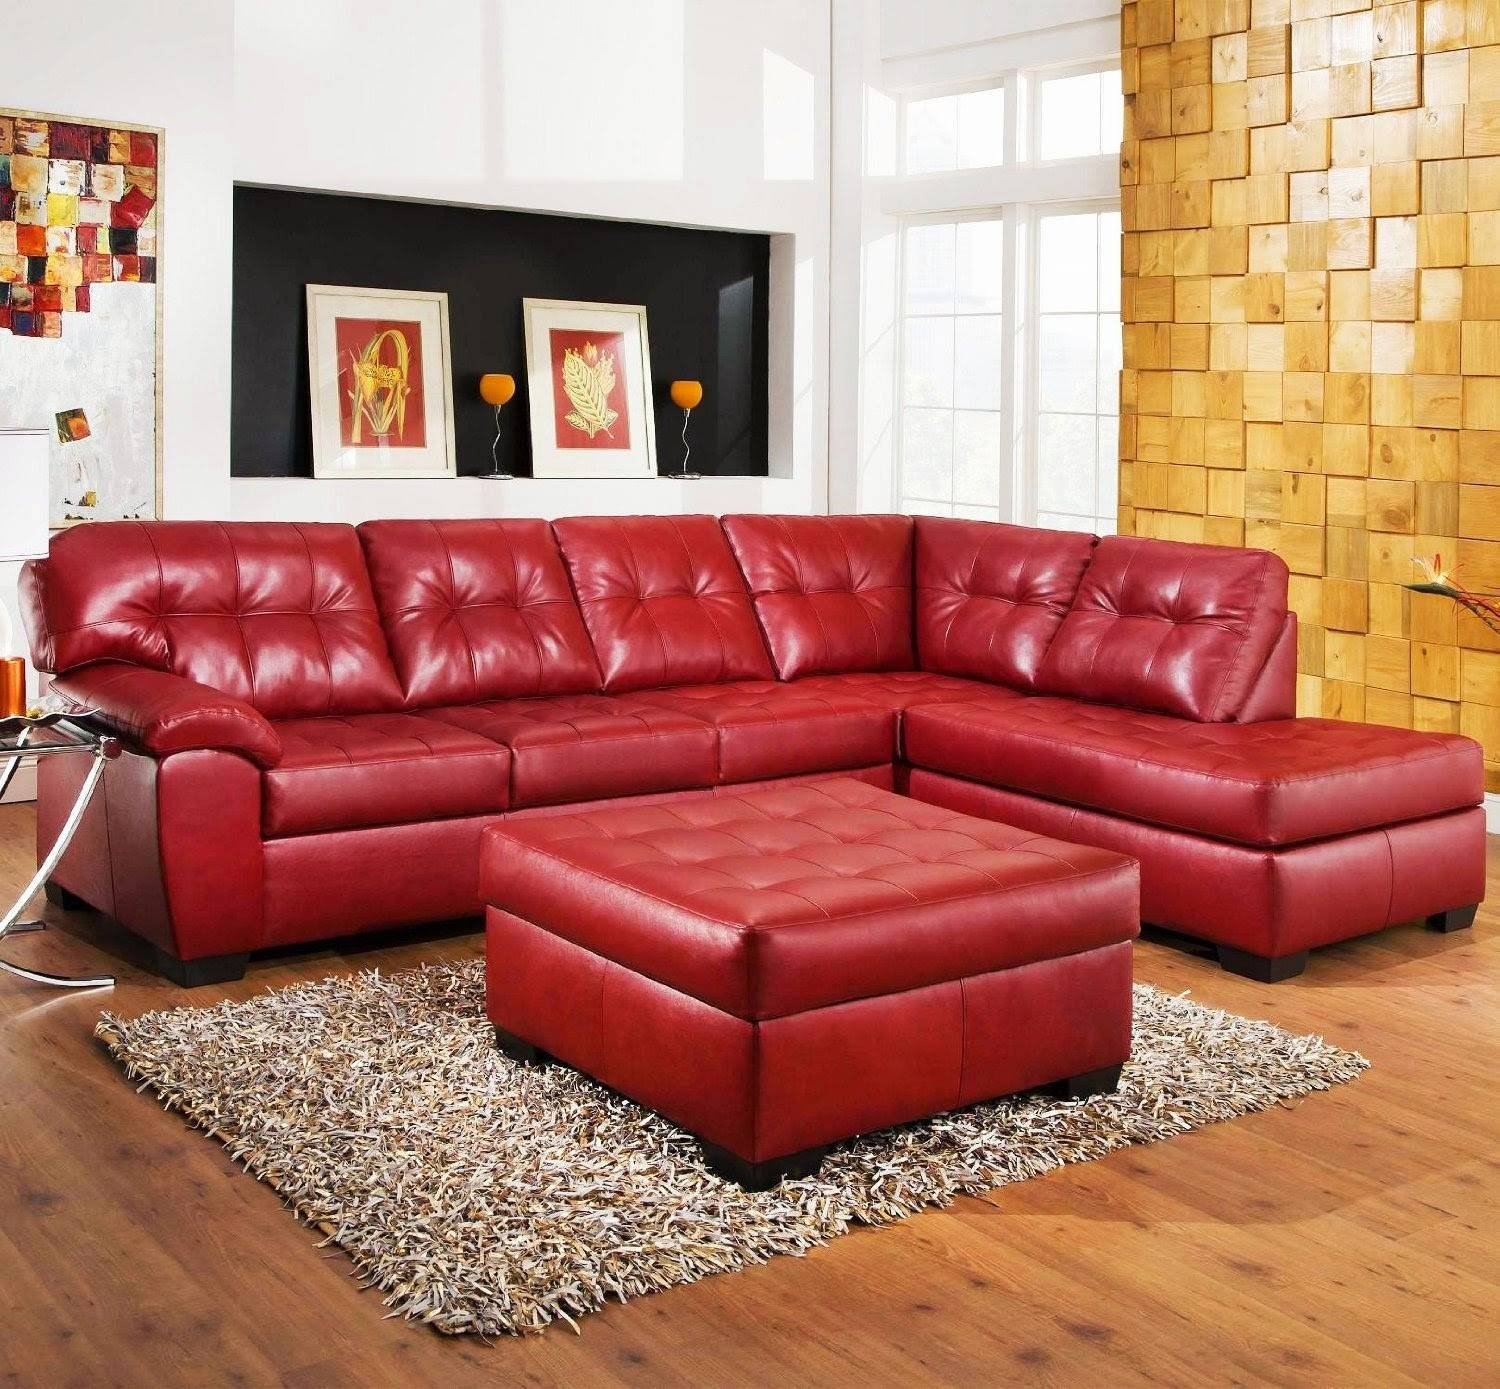 25 Inspirations of fortable Sectional Sofas